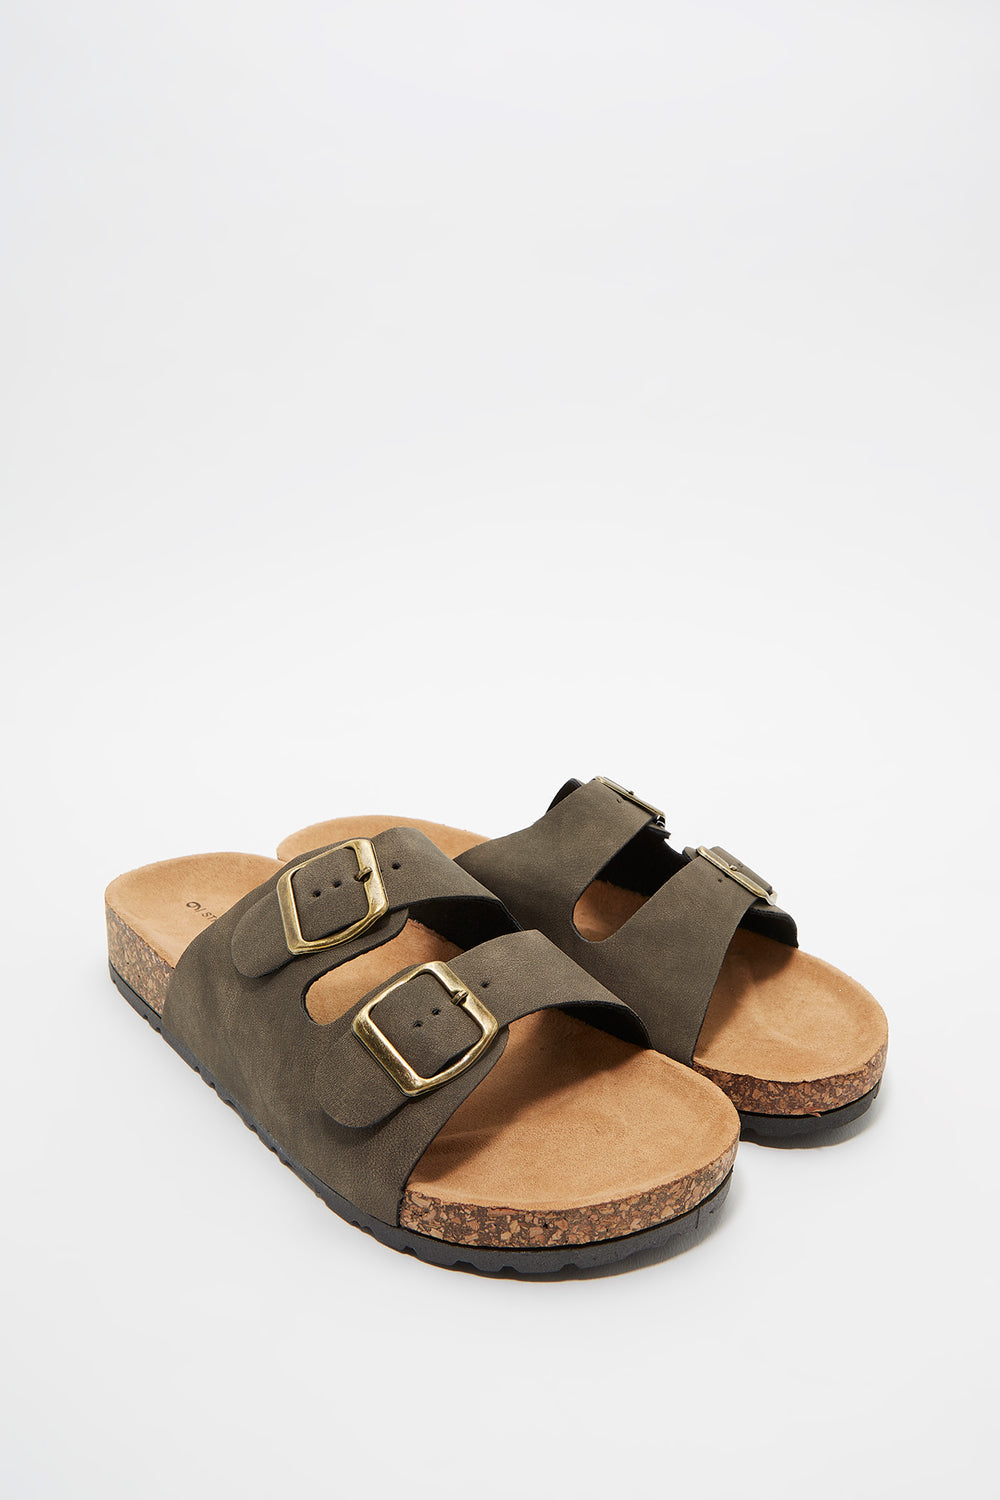 Dual Buckle Strap Cork Slide Dark Green